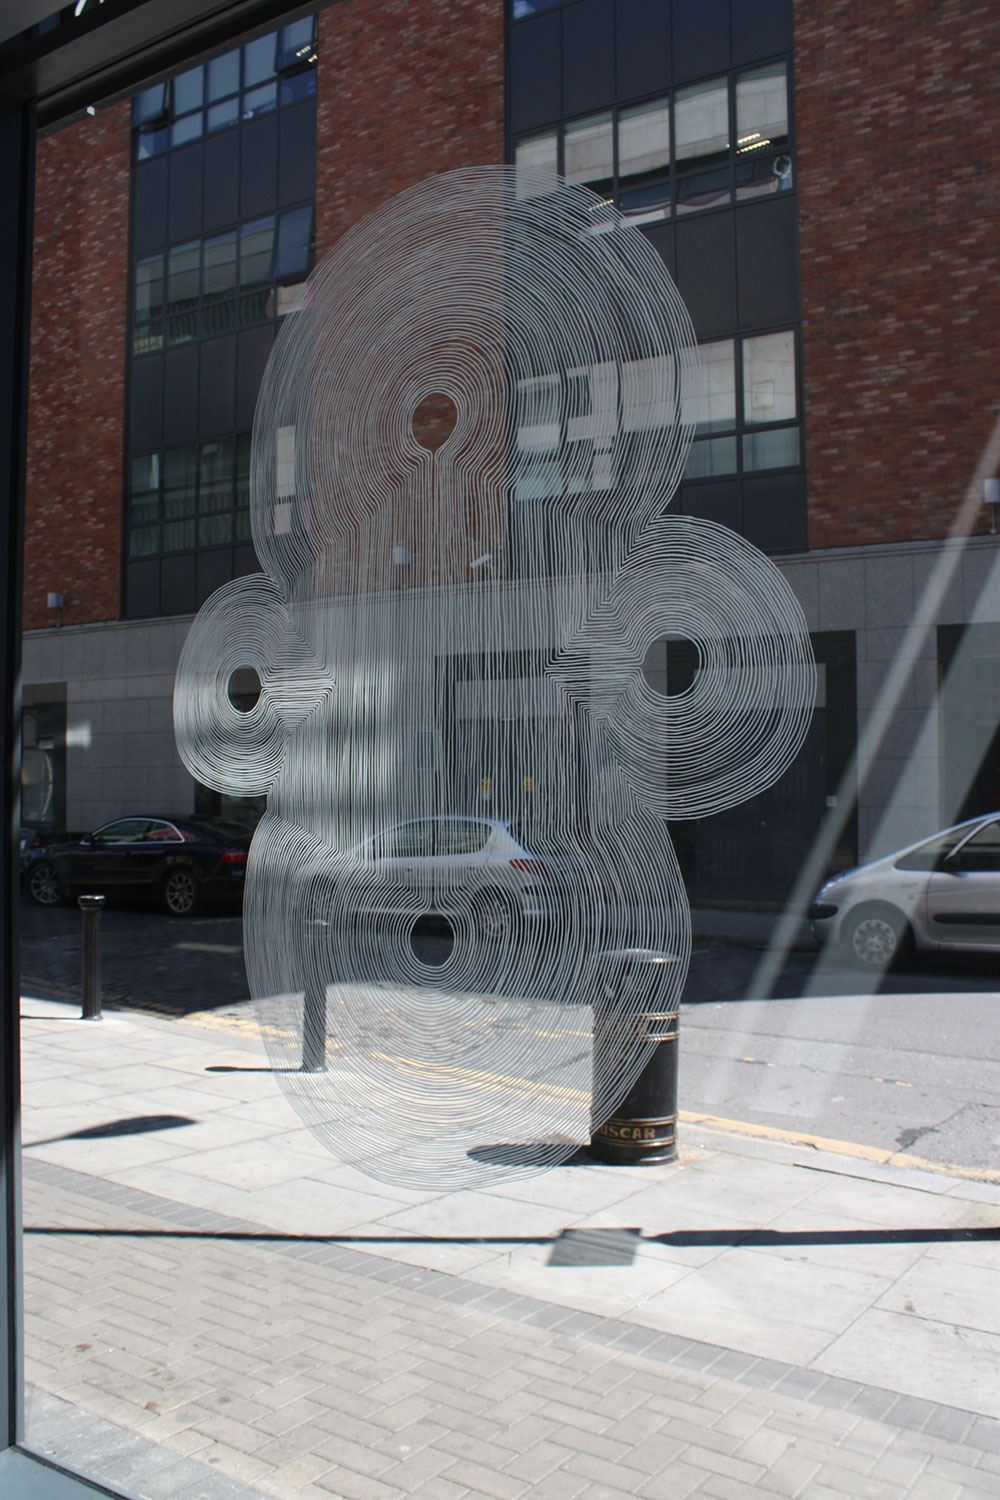 Ink on window, The Lab, Dublin